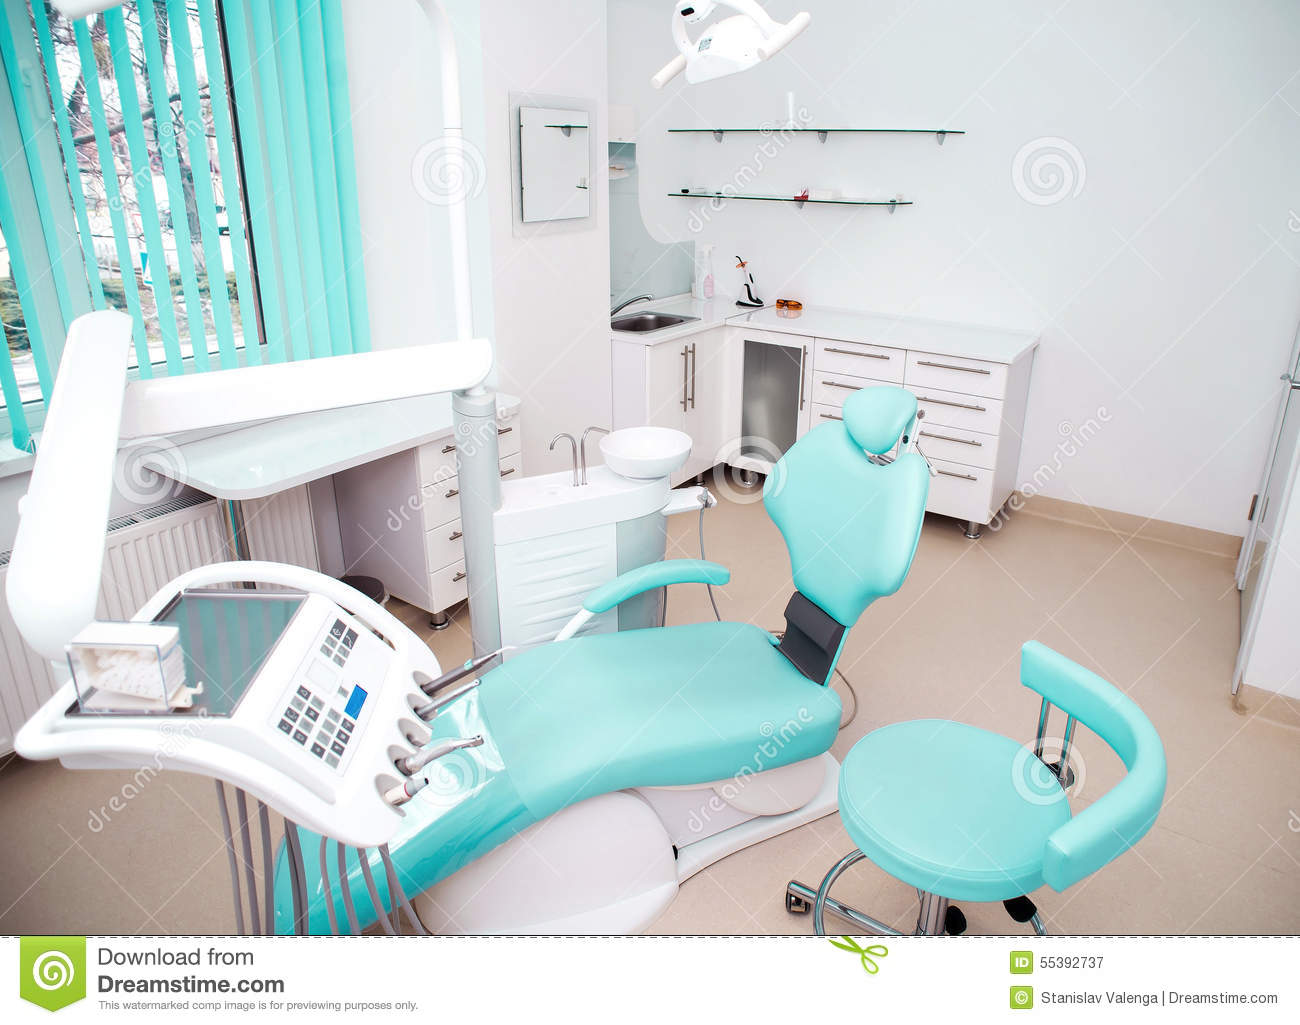 Dental Clinic Interior Design With Chair And Tools Stock Photo - Image ...